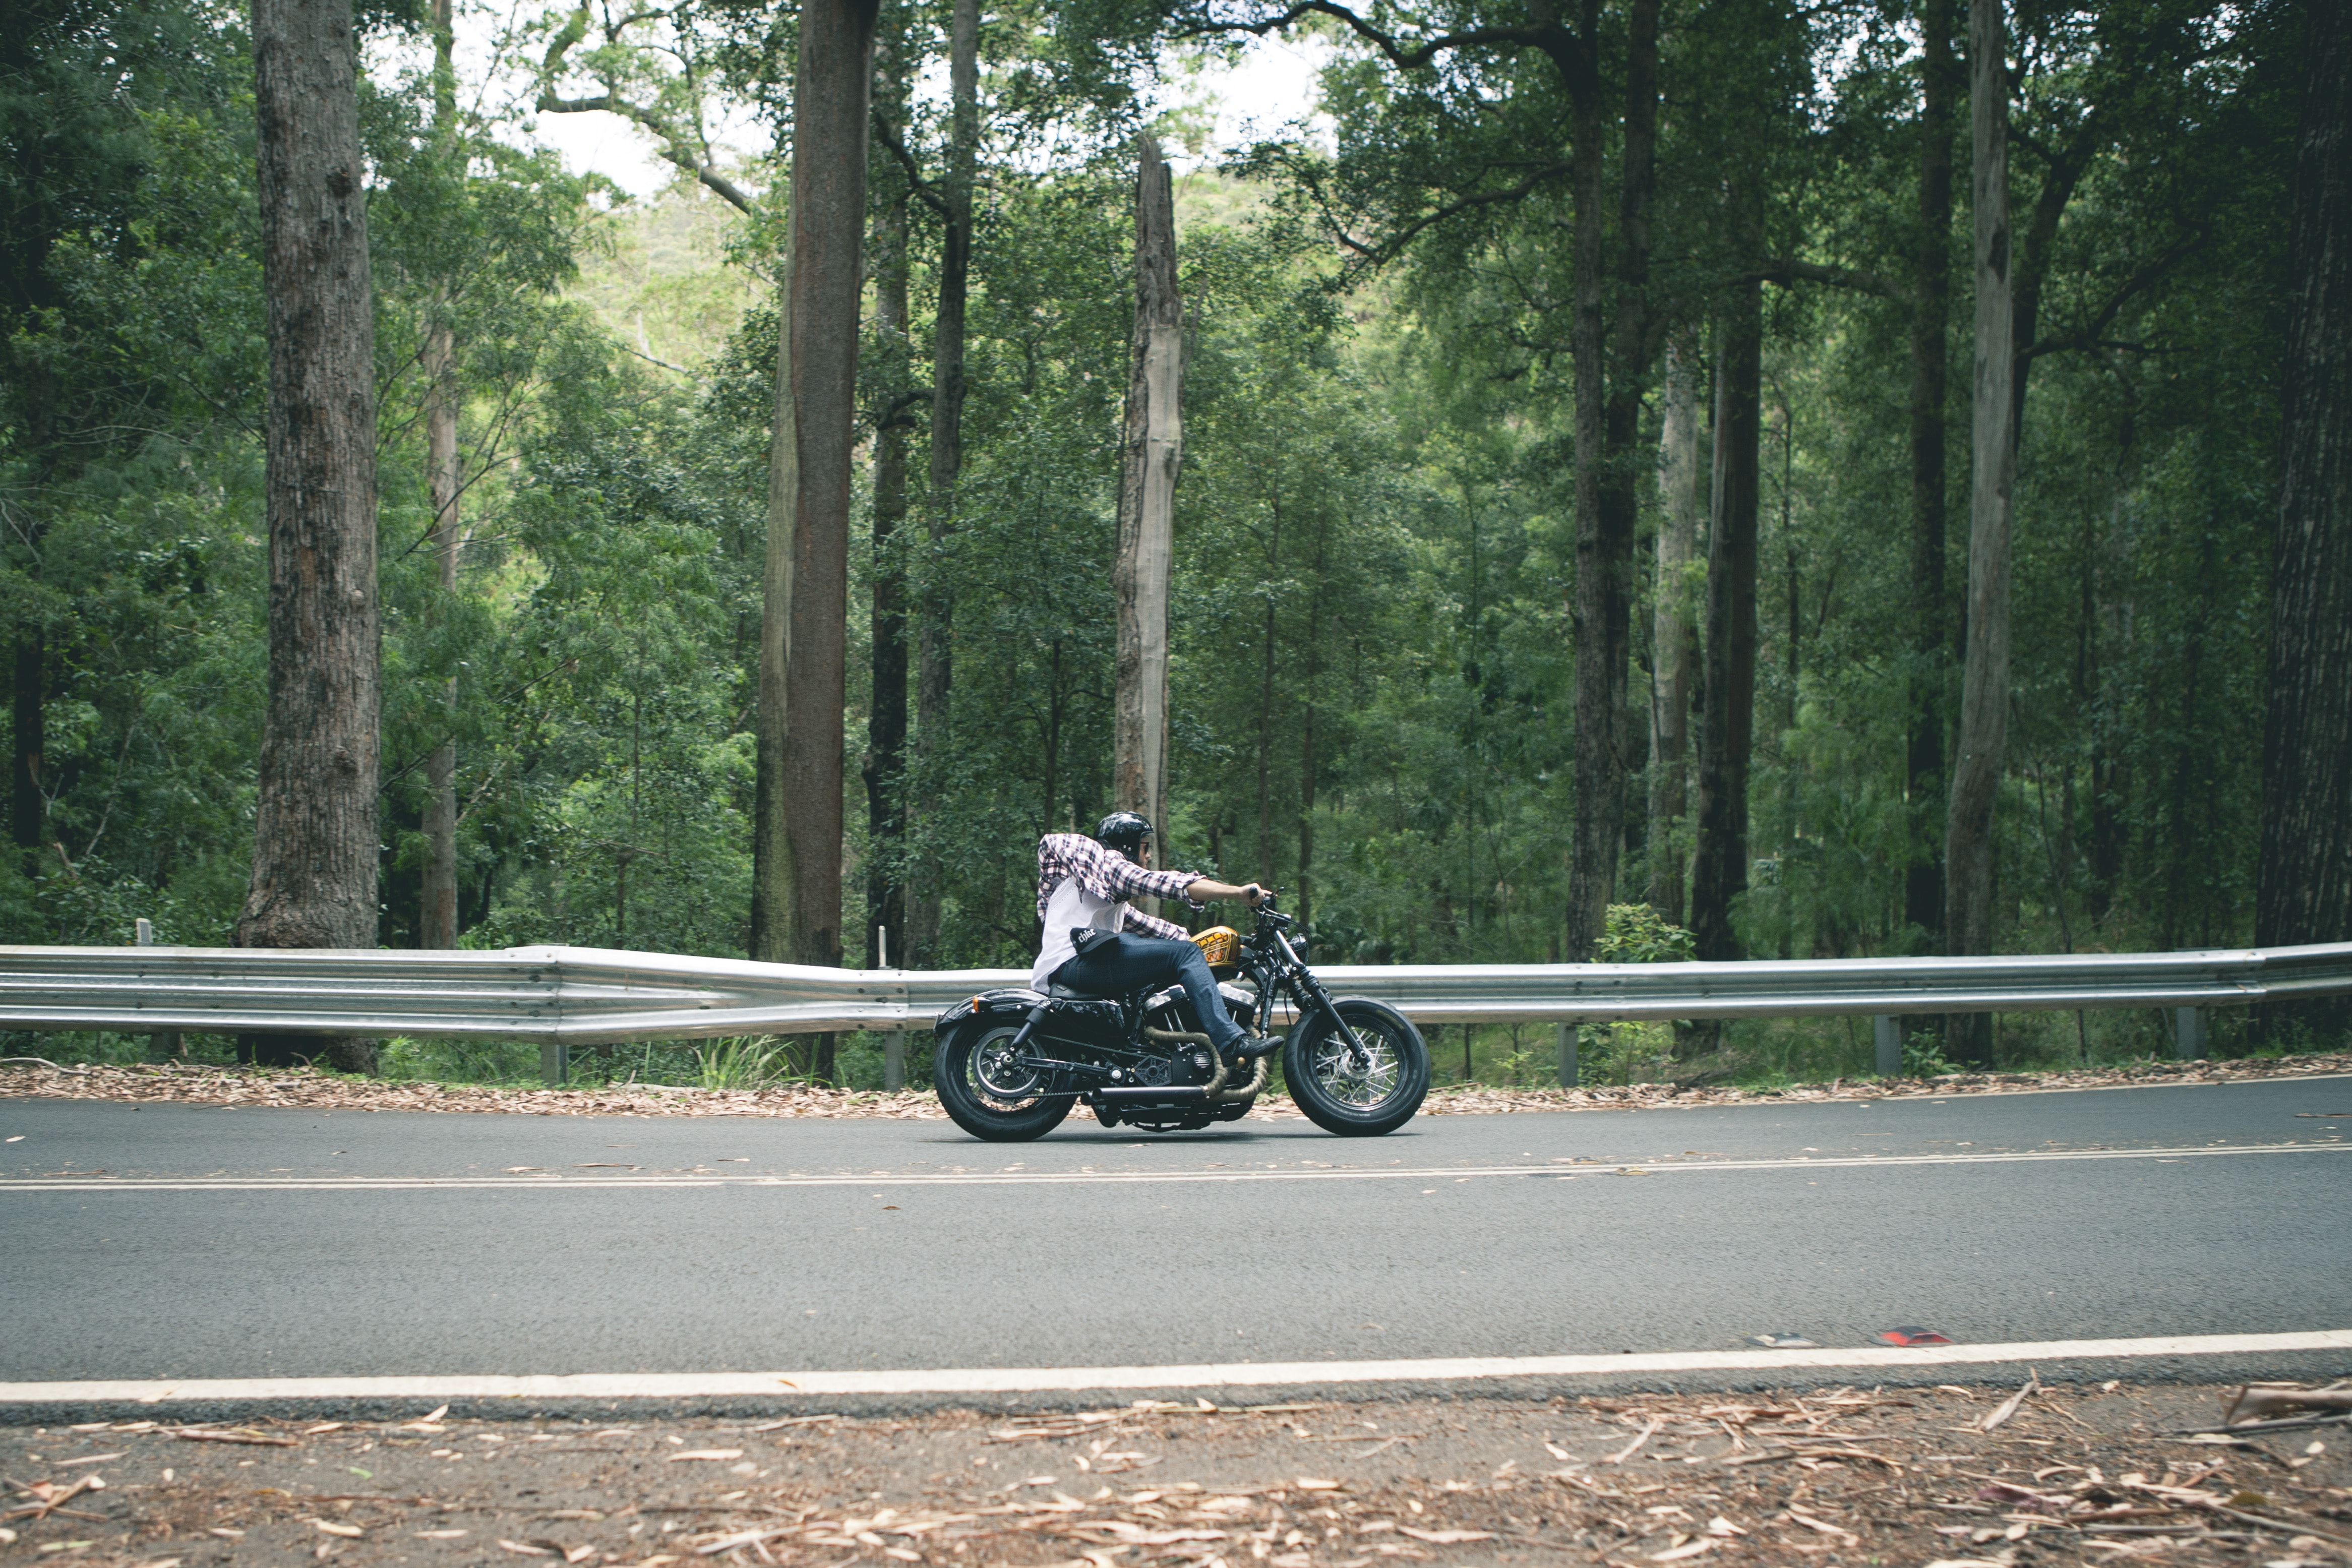 person riding motorcycle passing on road surround by trees